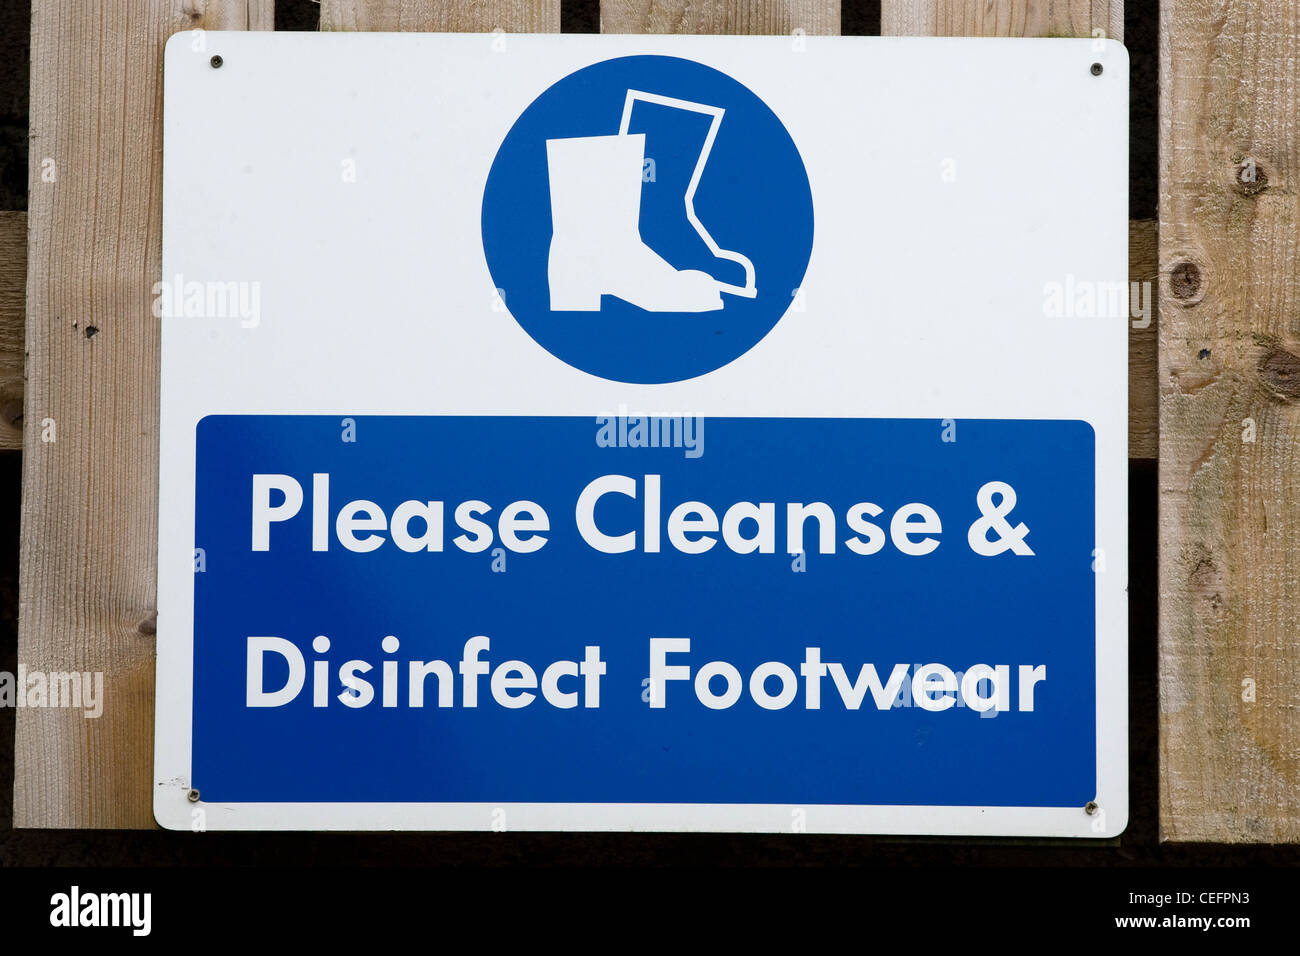 Please Cleanse & Disinfect Footwear Sign - Stock Image